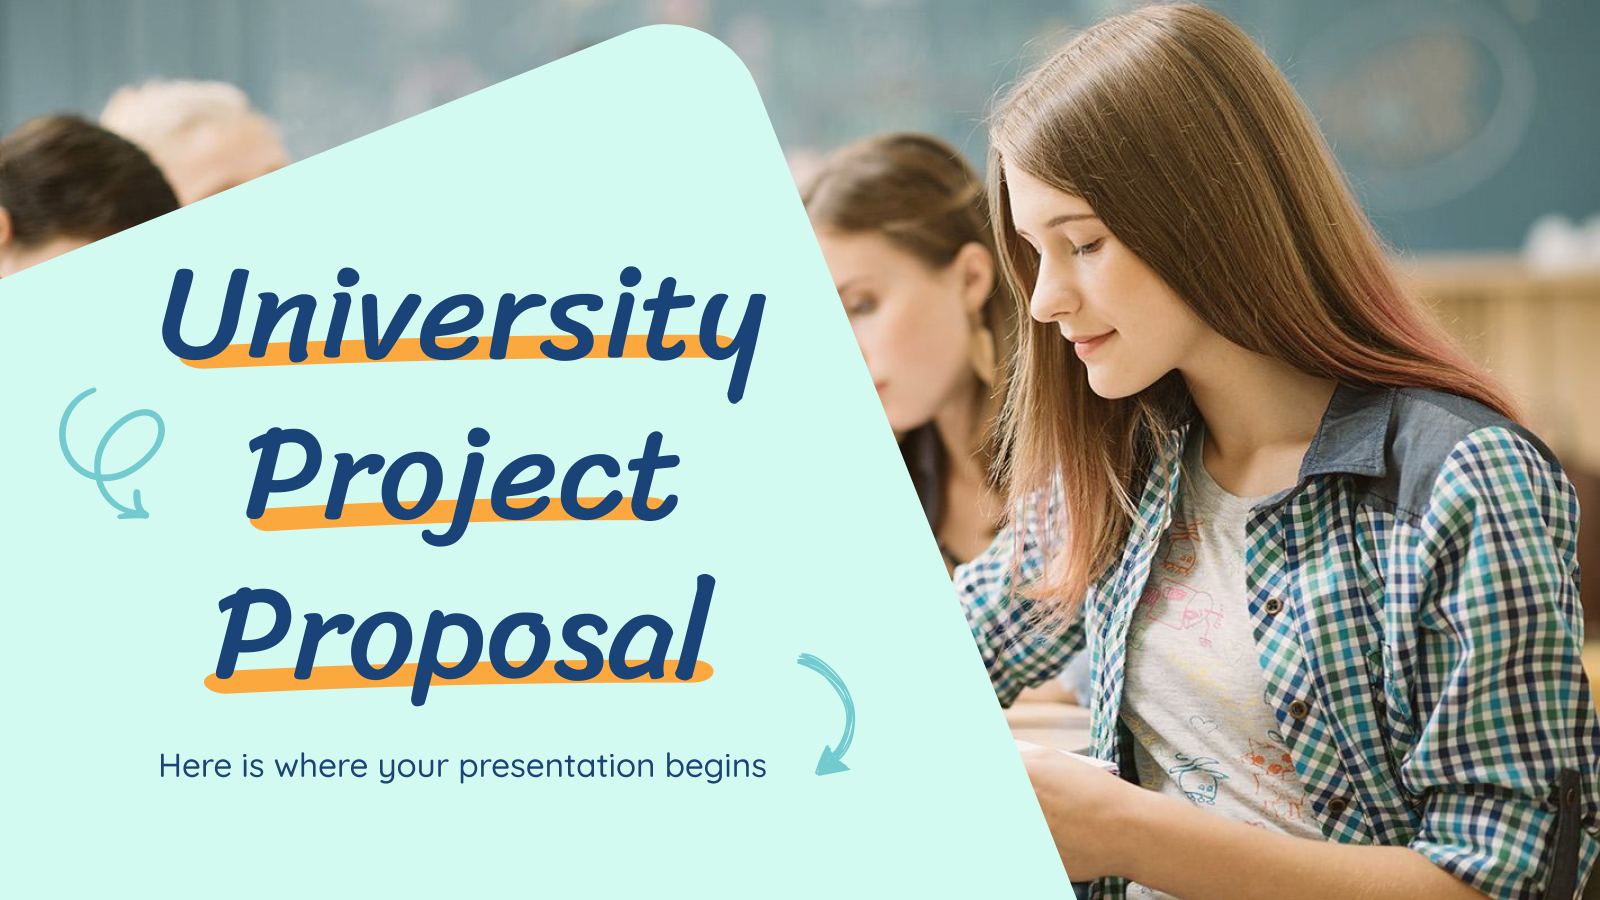 University Project Proposal presentation template